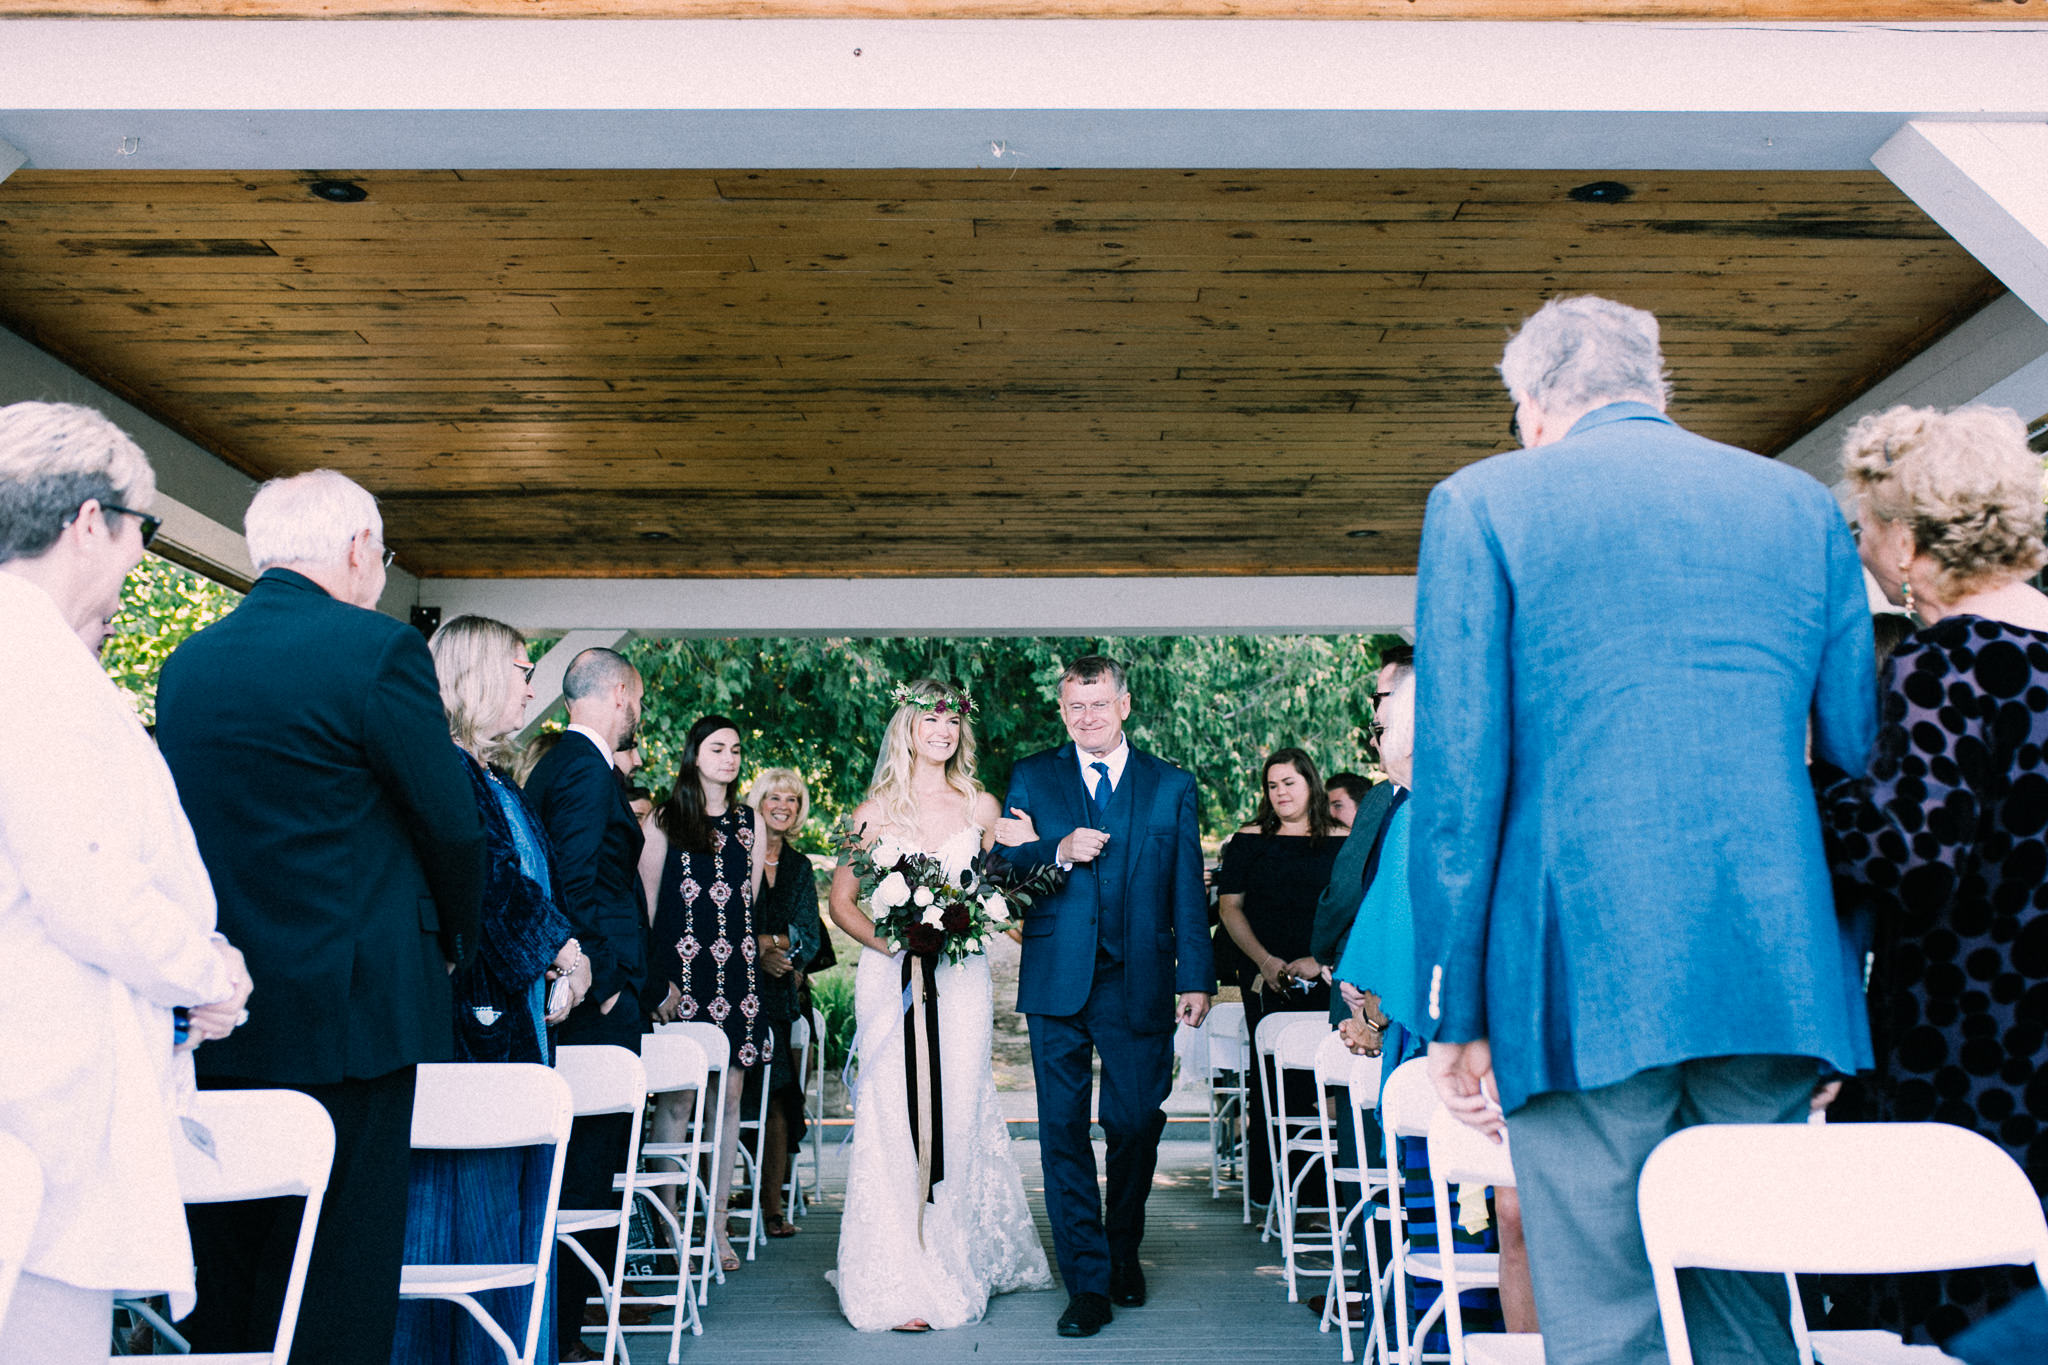 Muskoka lakeside wedding at Port Cunnington Lodge by Max Wong Photo (45)